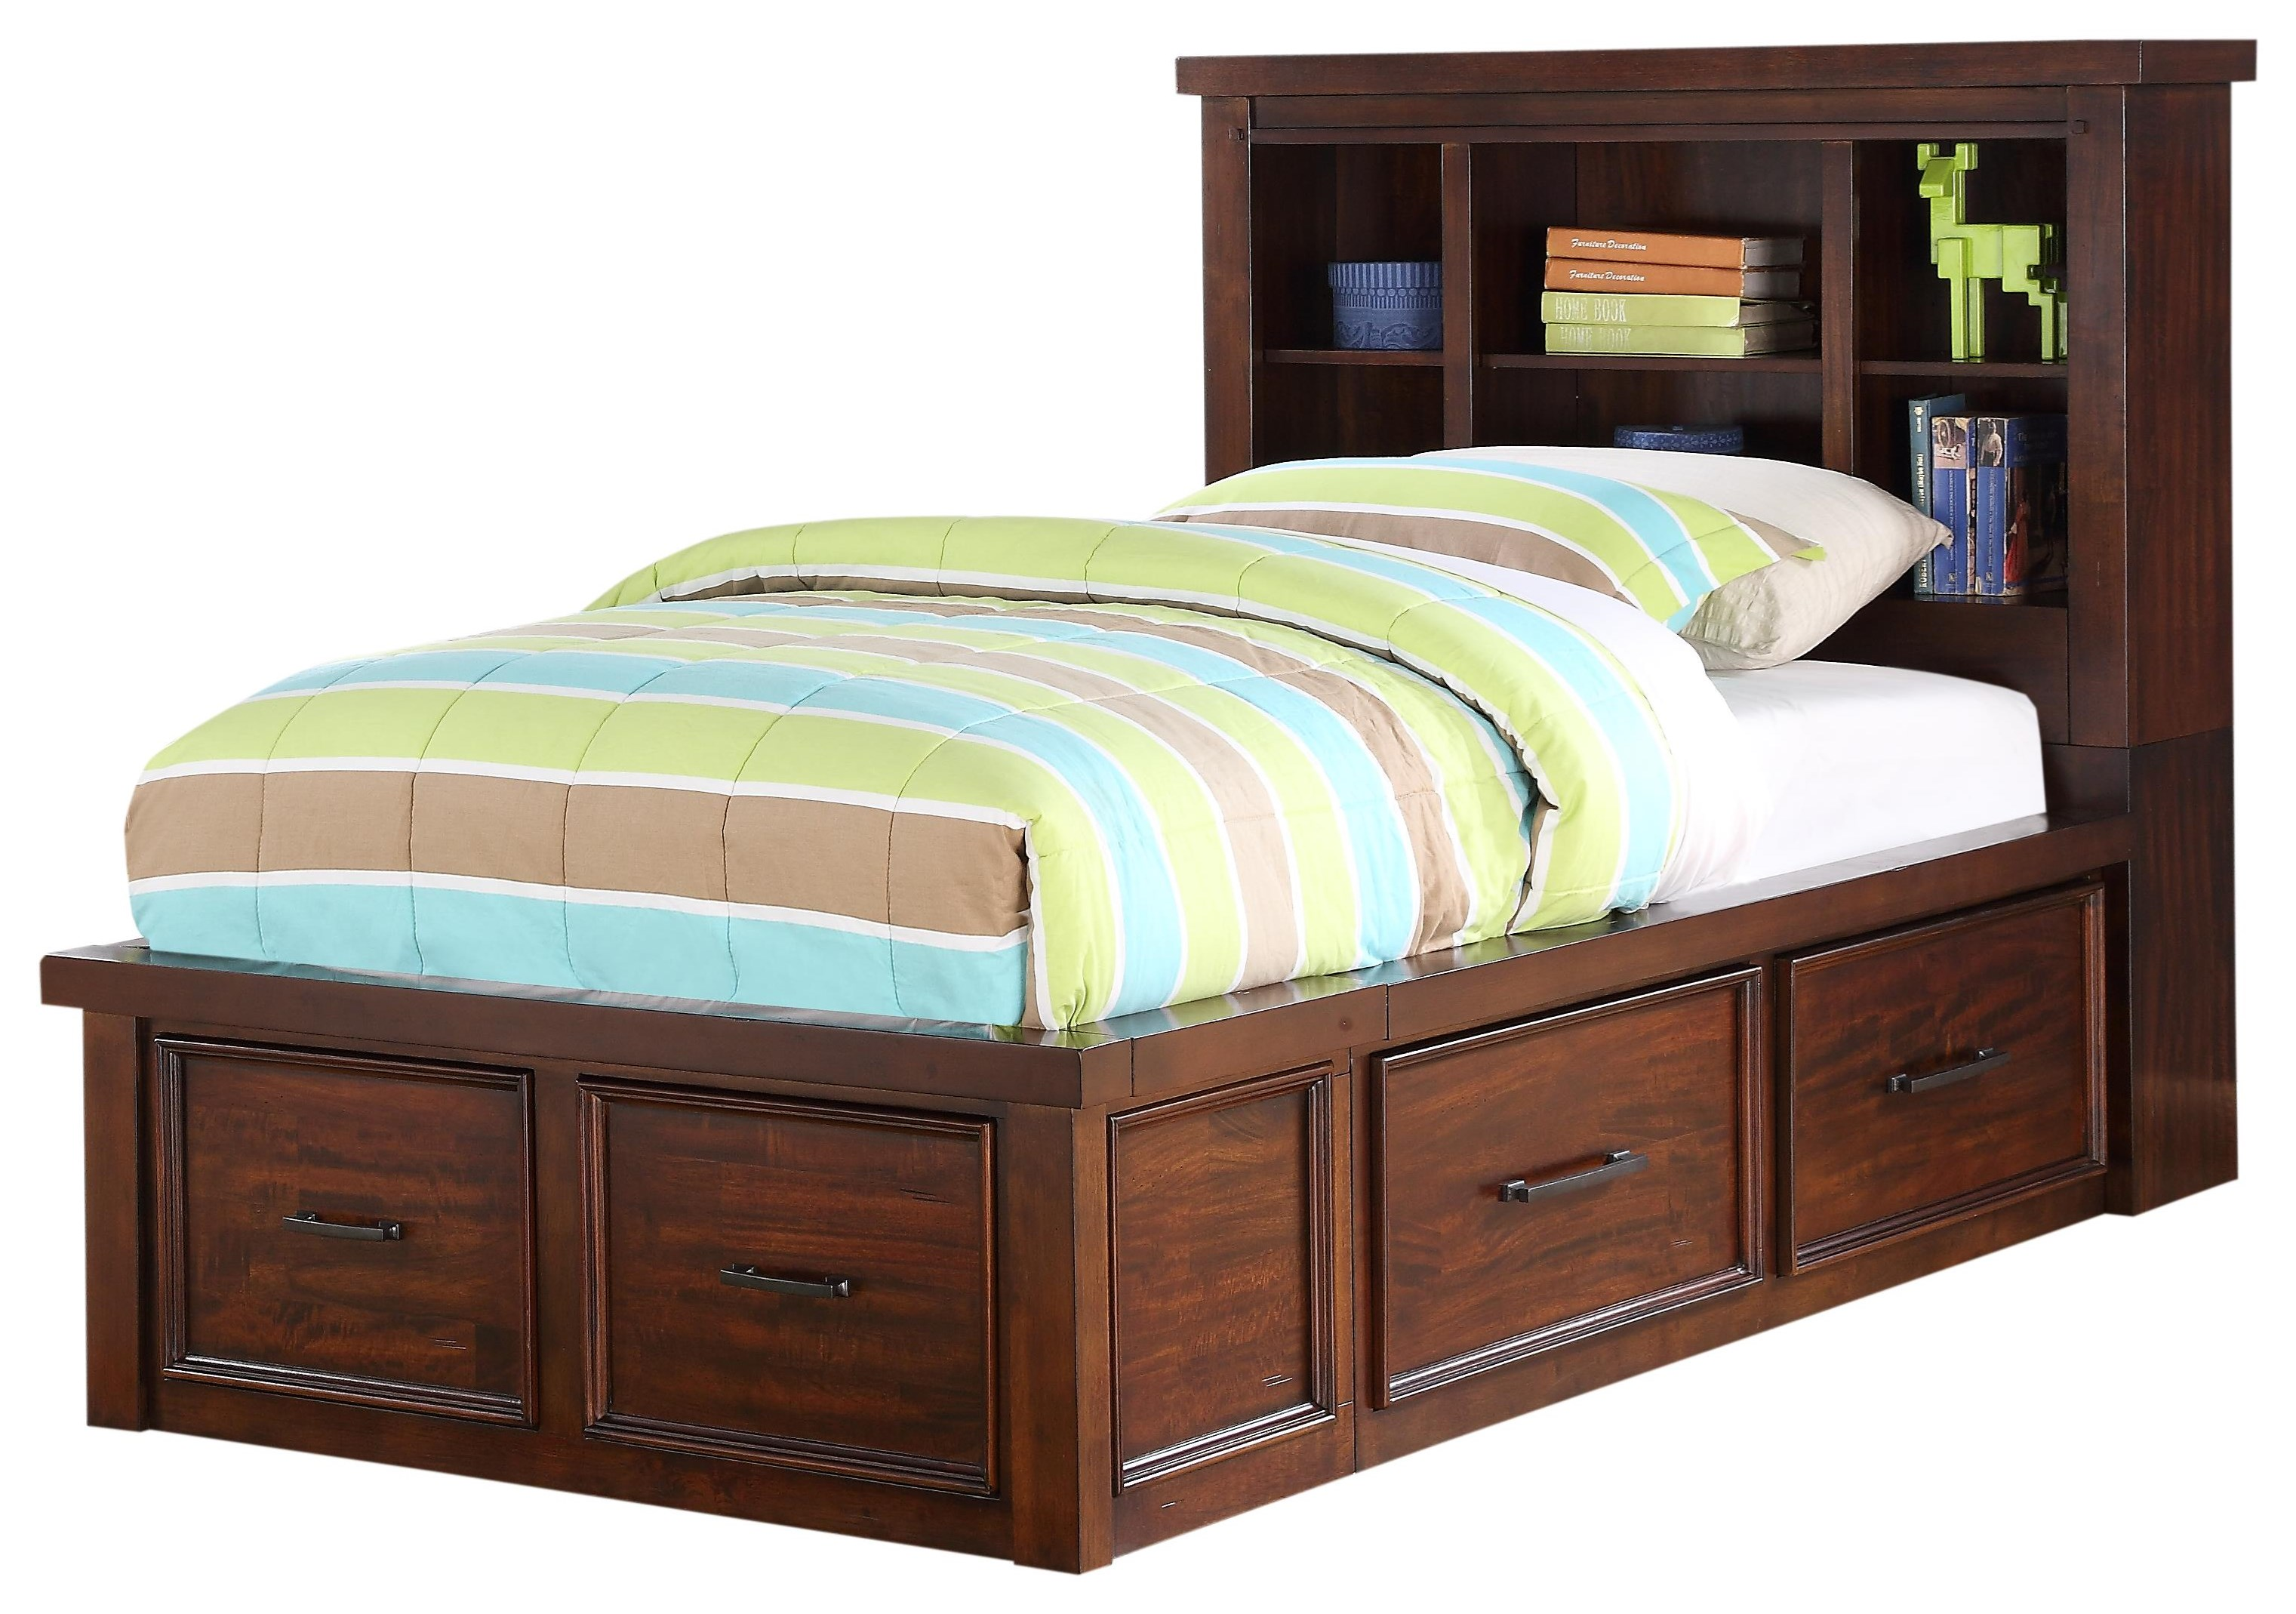 HAYWARD TWIN BOOKCASE BED WITH STORAGE DRAWERS by HH at Walker's Furniture